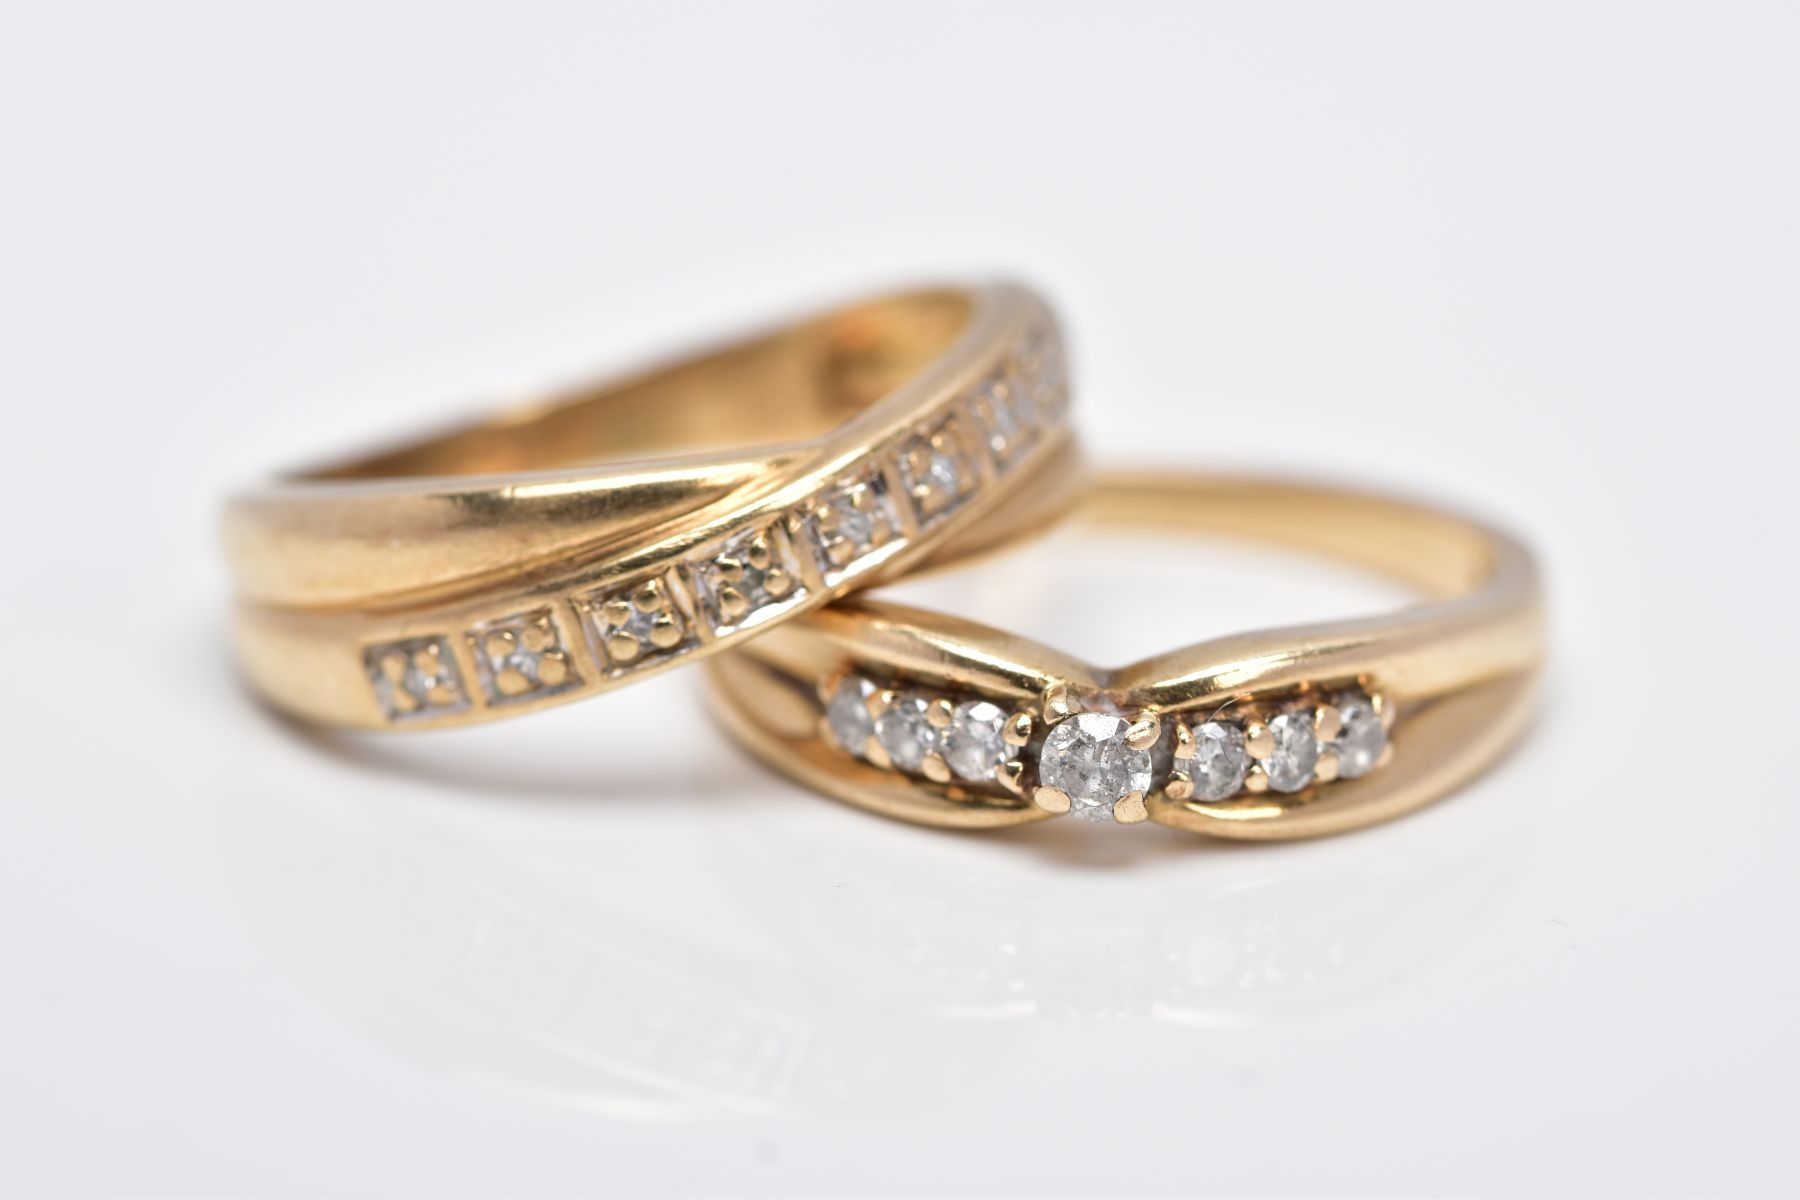 TWO 9CT GOLD DIAMOND RINGS, the first designed with a row of seven round brilliant cut diamonds, - Image 5 of 5